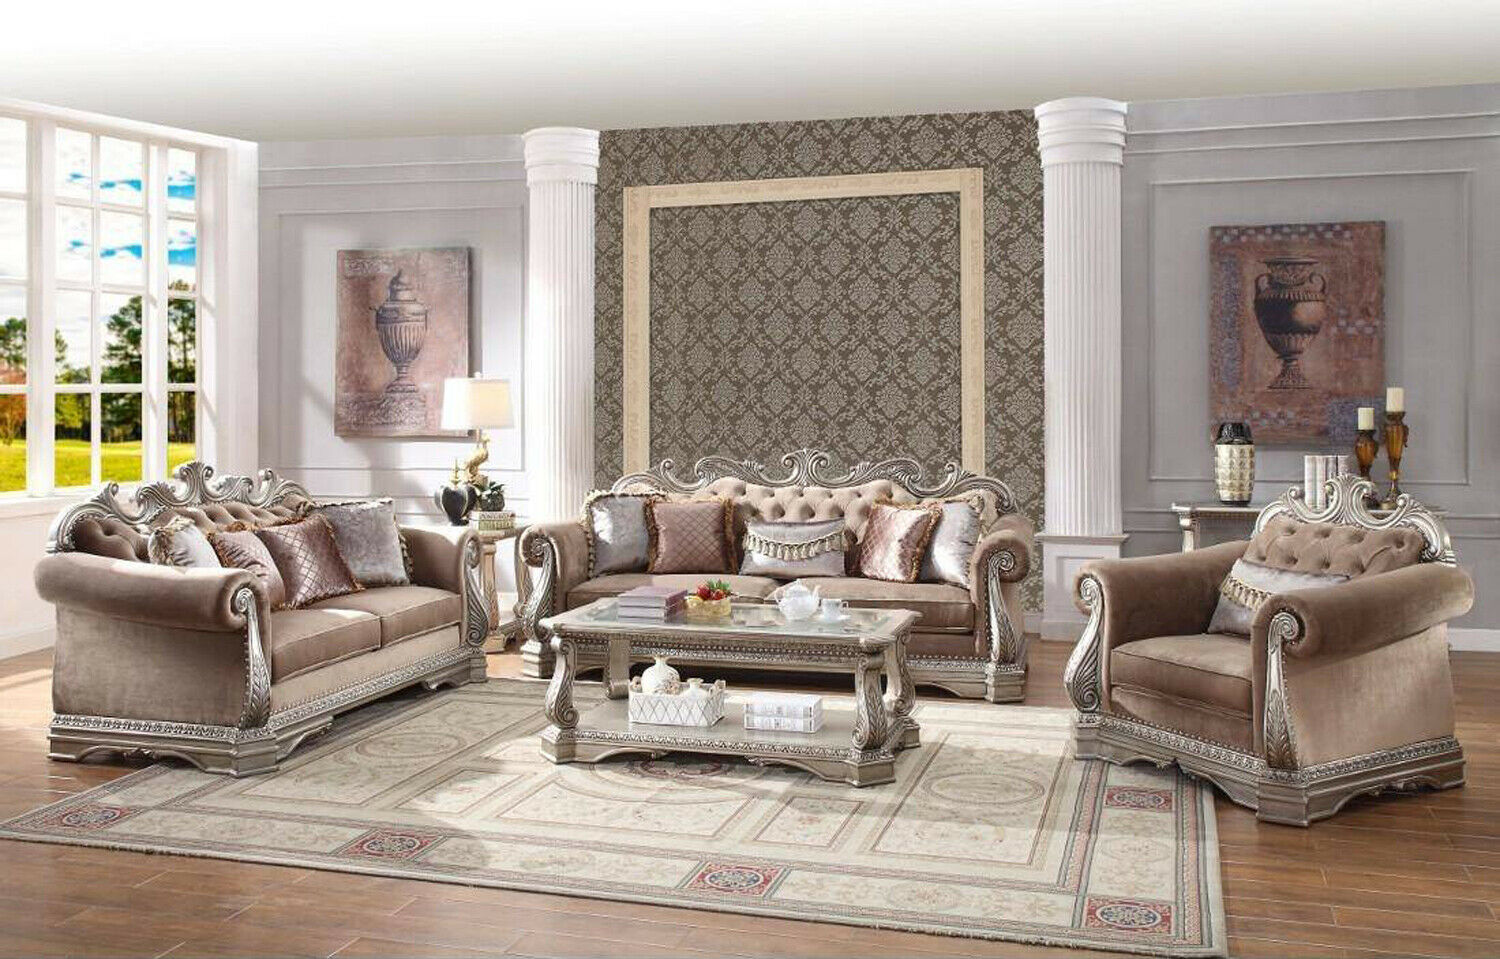 Details About Opulent Traditional Ornate Sofa Love Seat Chair 3 Piece Formal Living Room Set